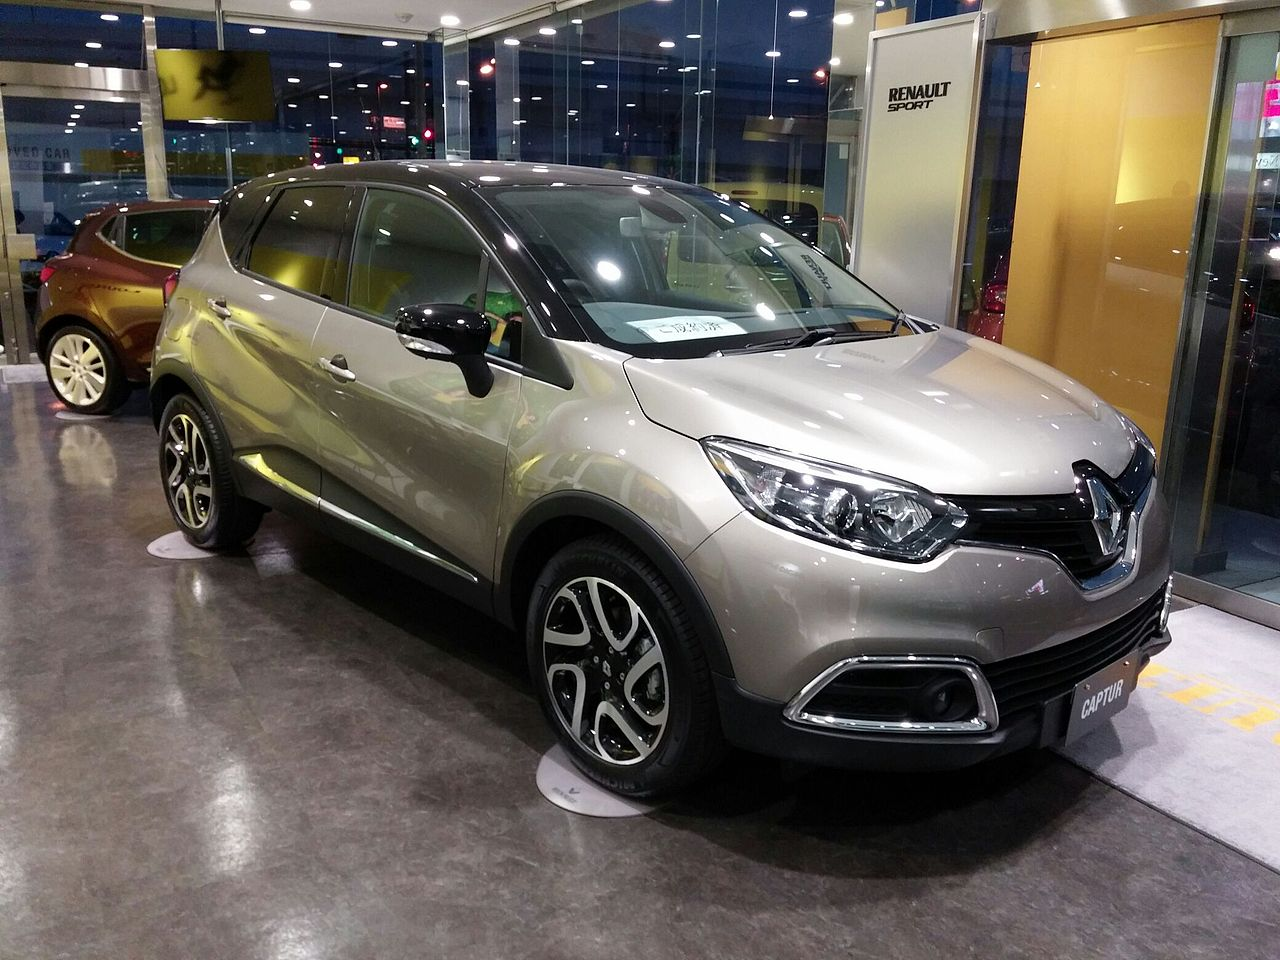 file renault captur first anniversary edition jpn wikimedia commons. Black Bedroom Furniture Sets. Home Design Ideas